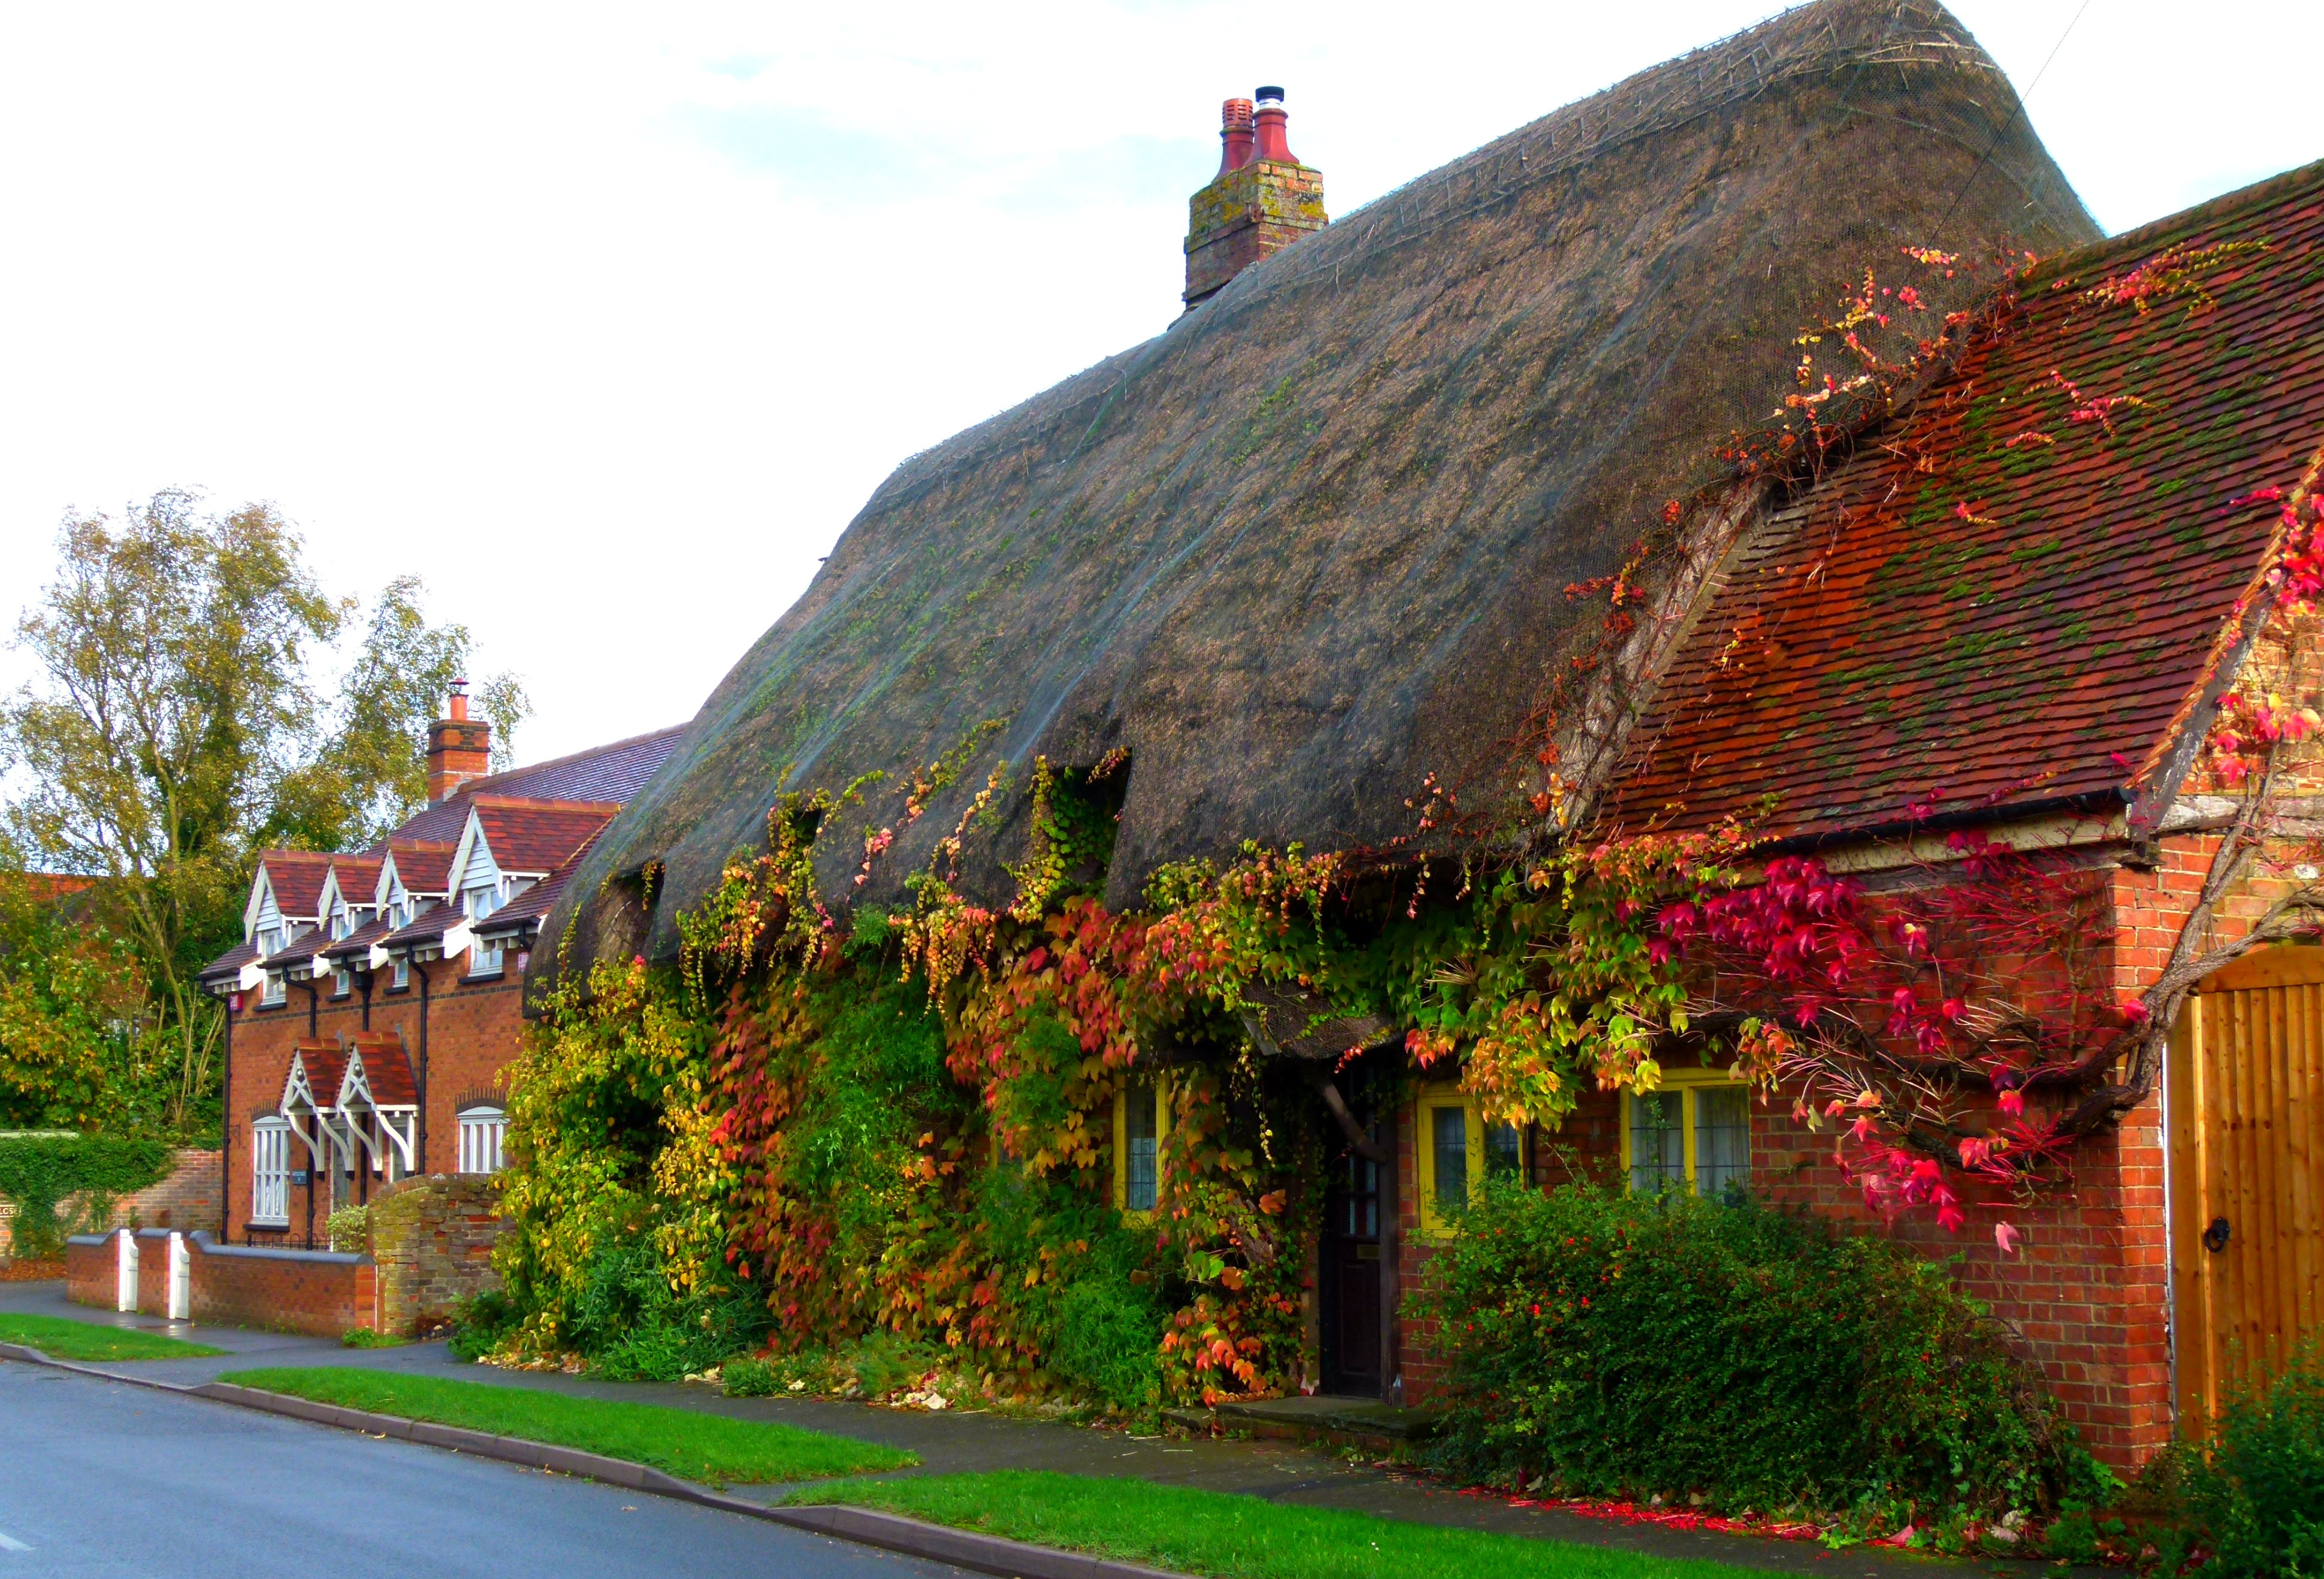 House in england 4k ultra hd wallpaper and background for Wallpaper home england